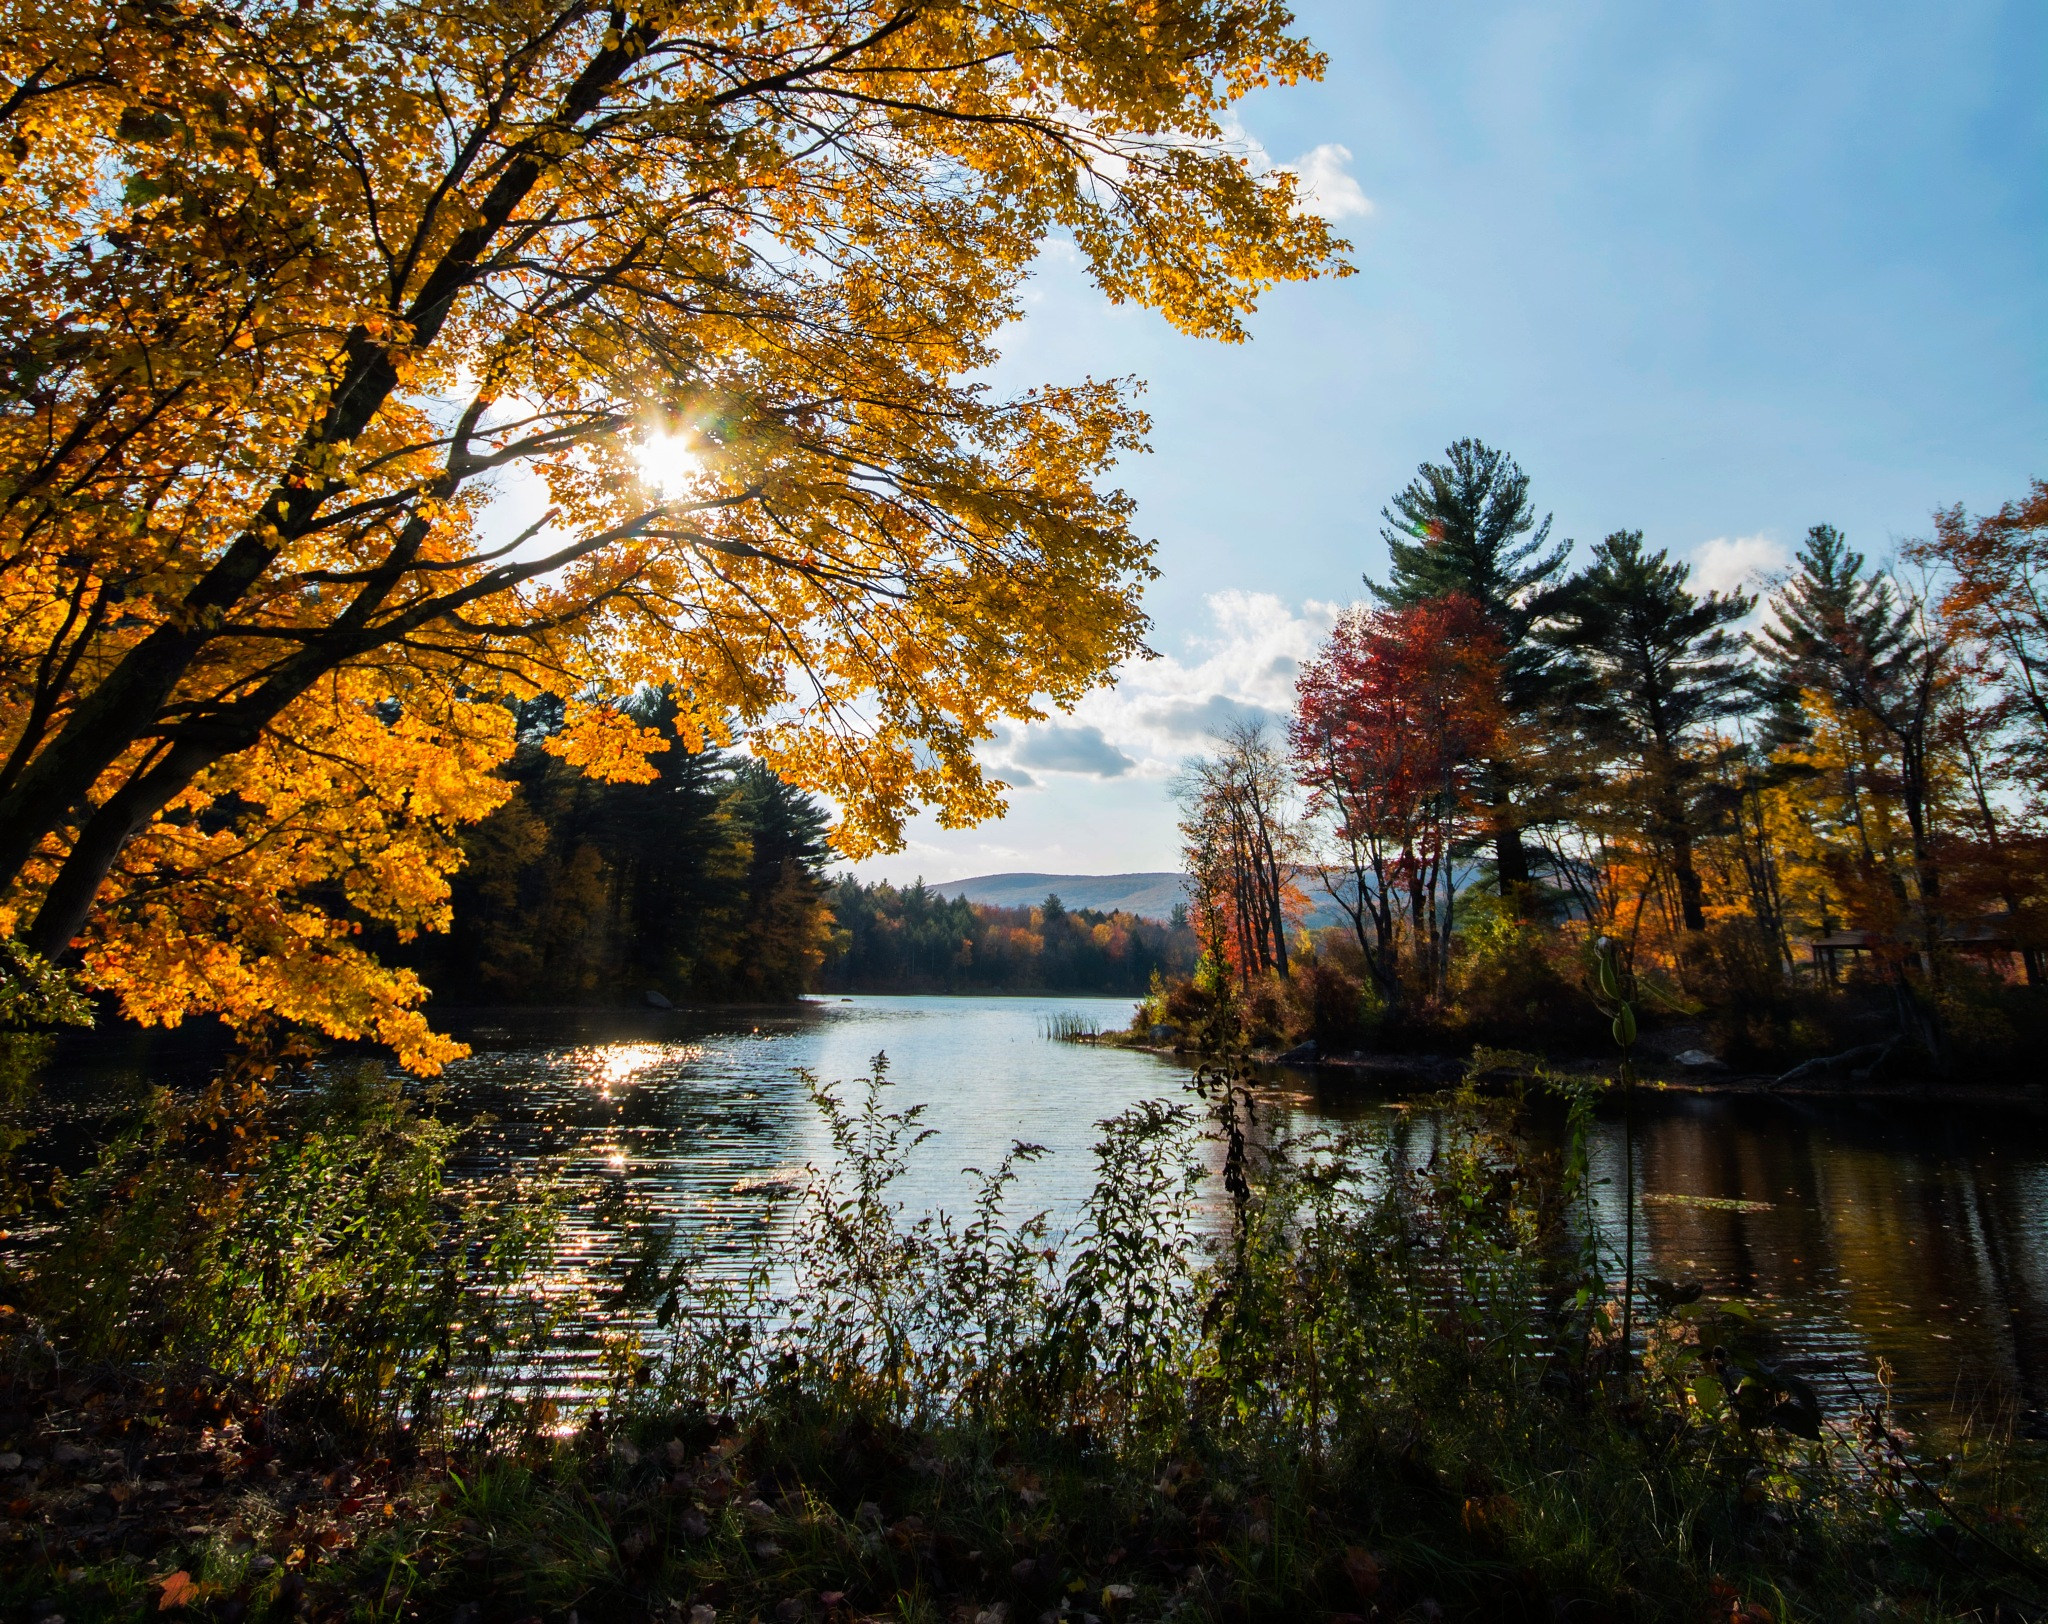 Fall in Vermont by sue hartman